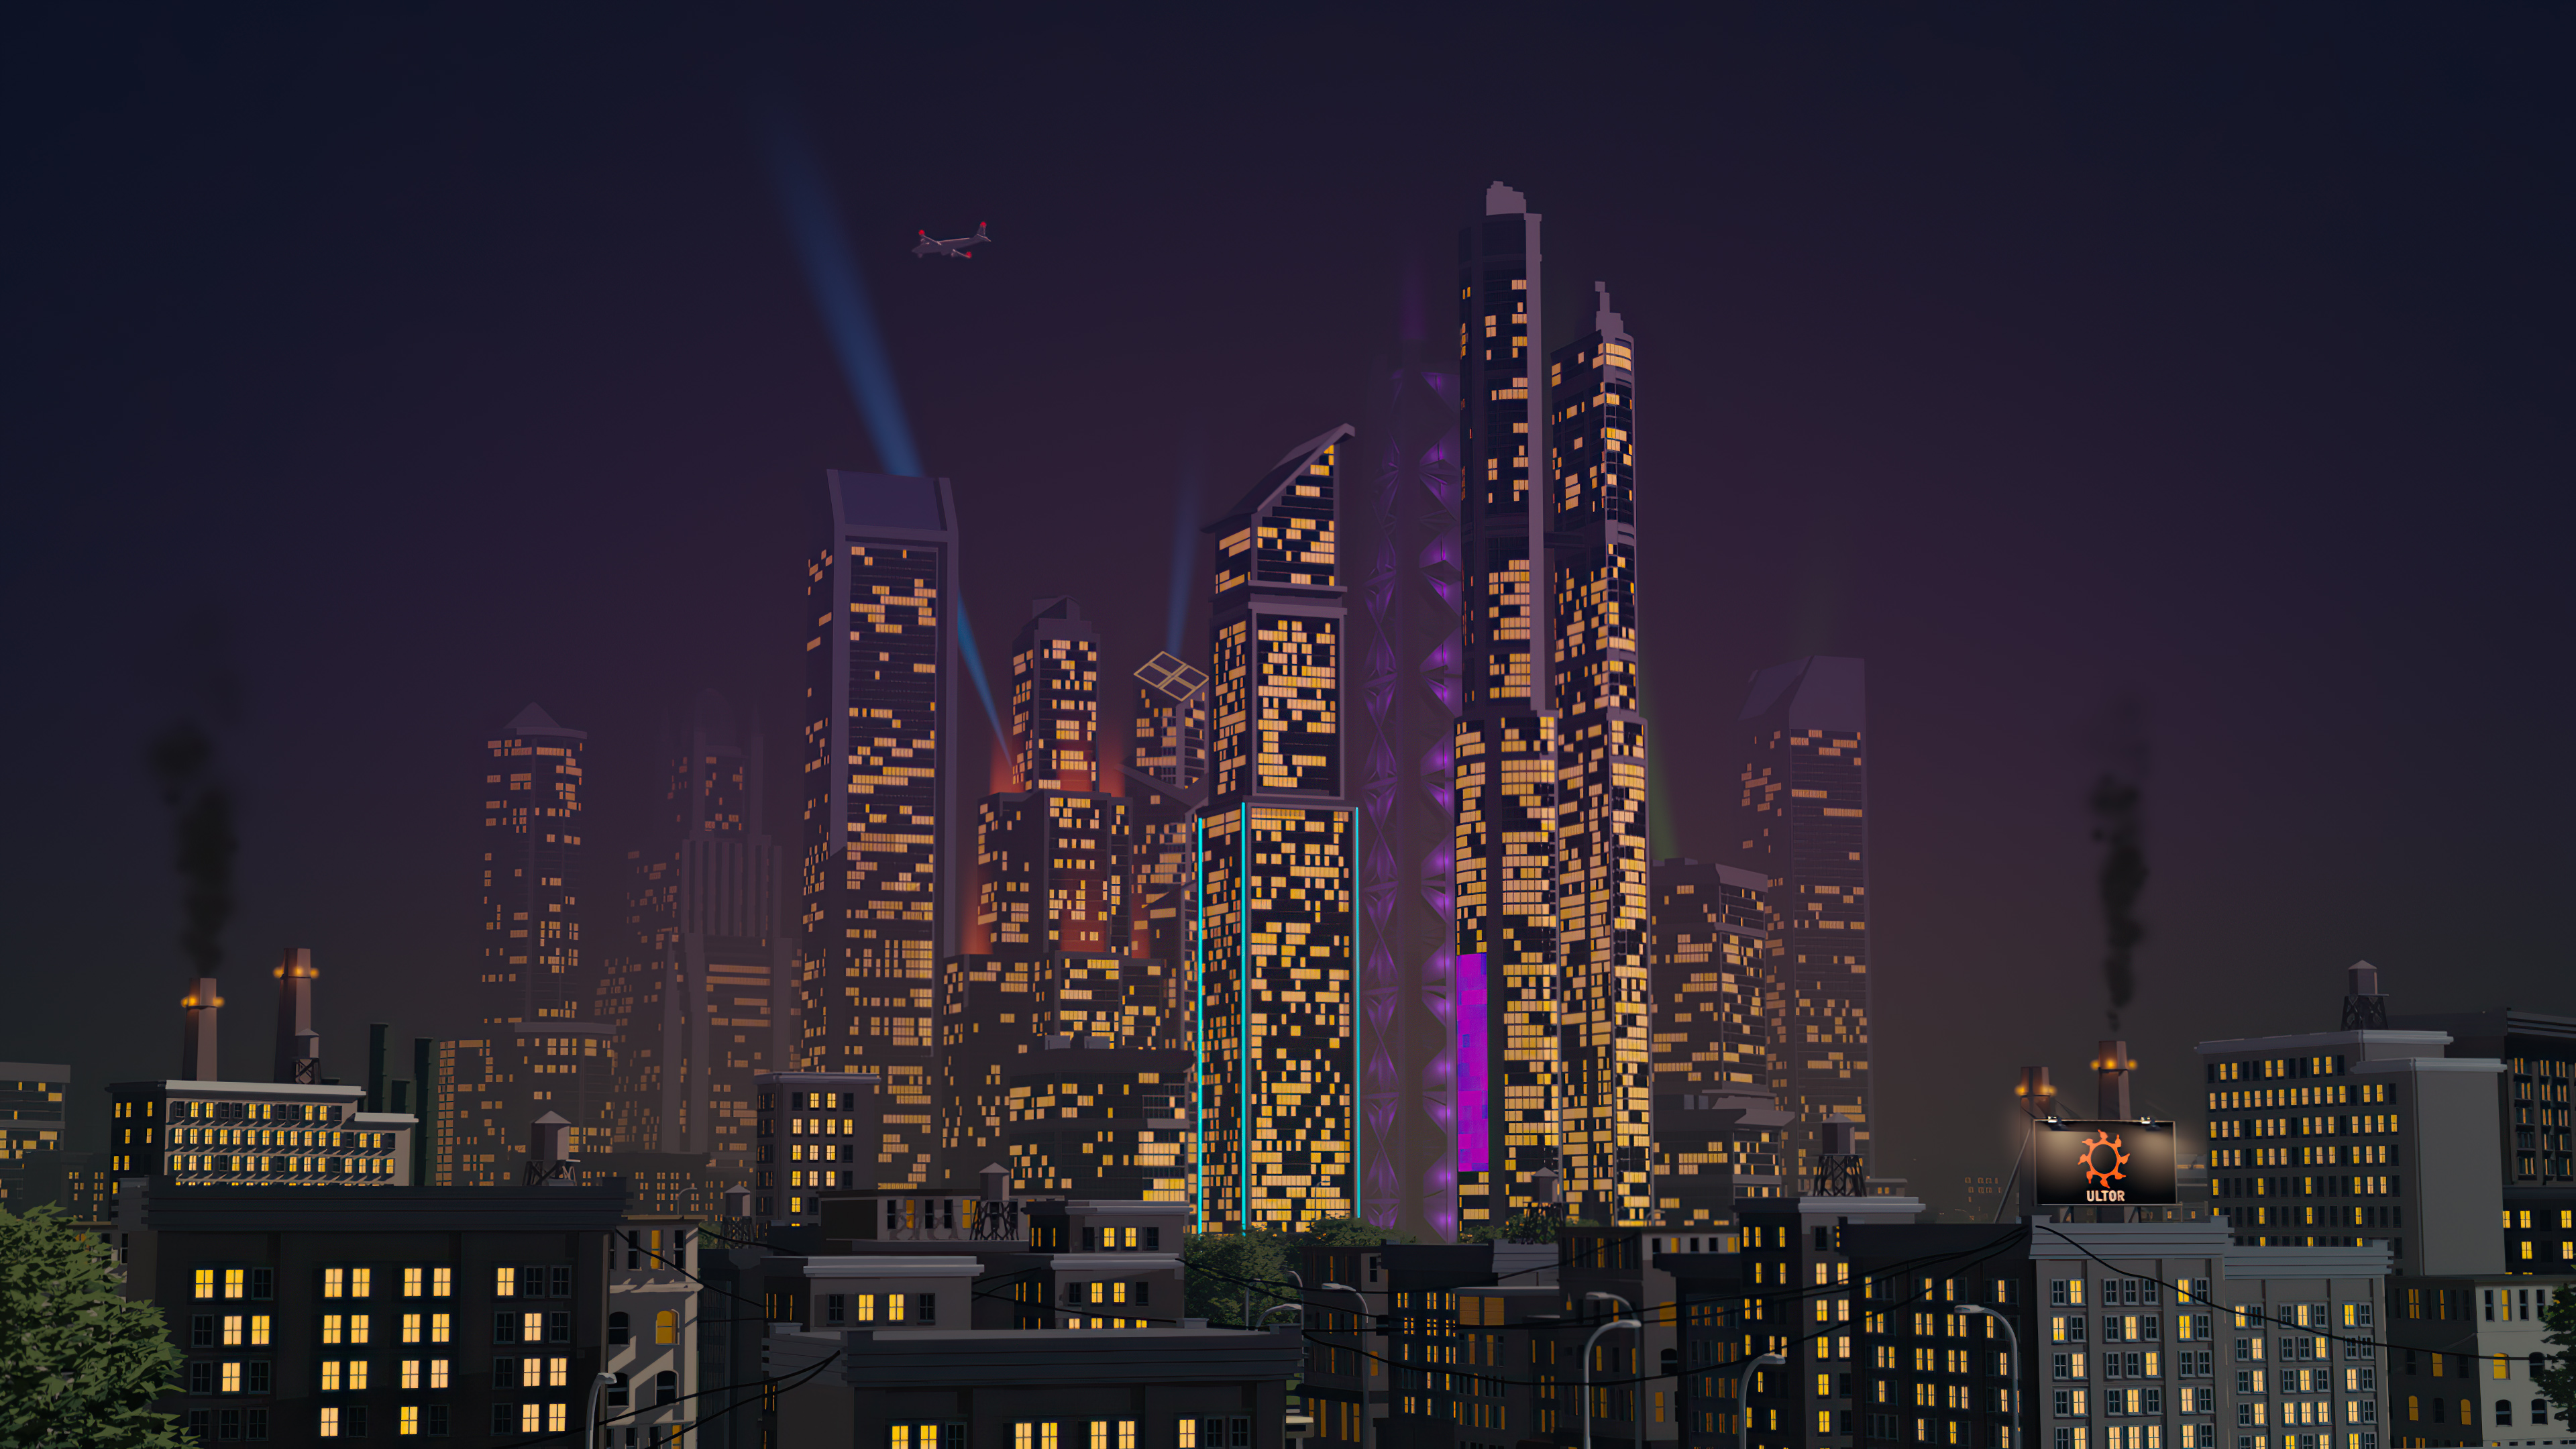 City Buildings Retrowave 4k Hd Artist 4k Wallpapers Images Backgrounds Photos And Pictures